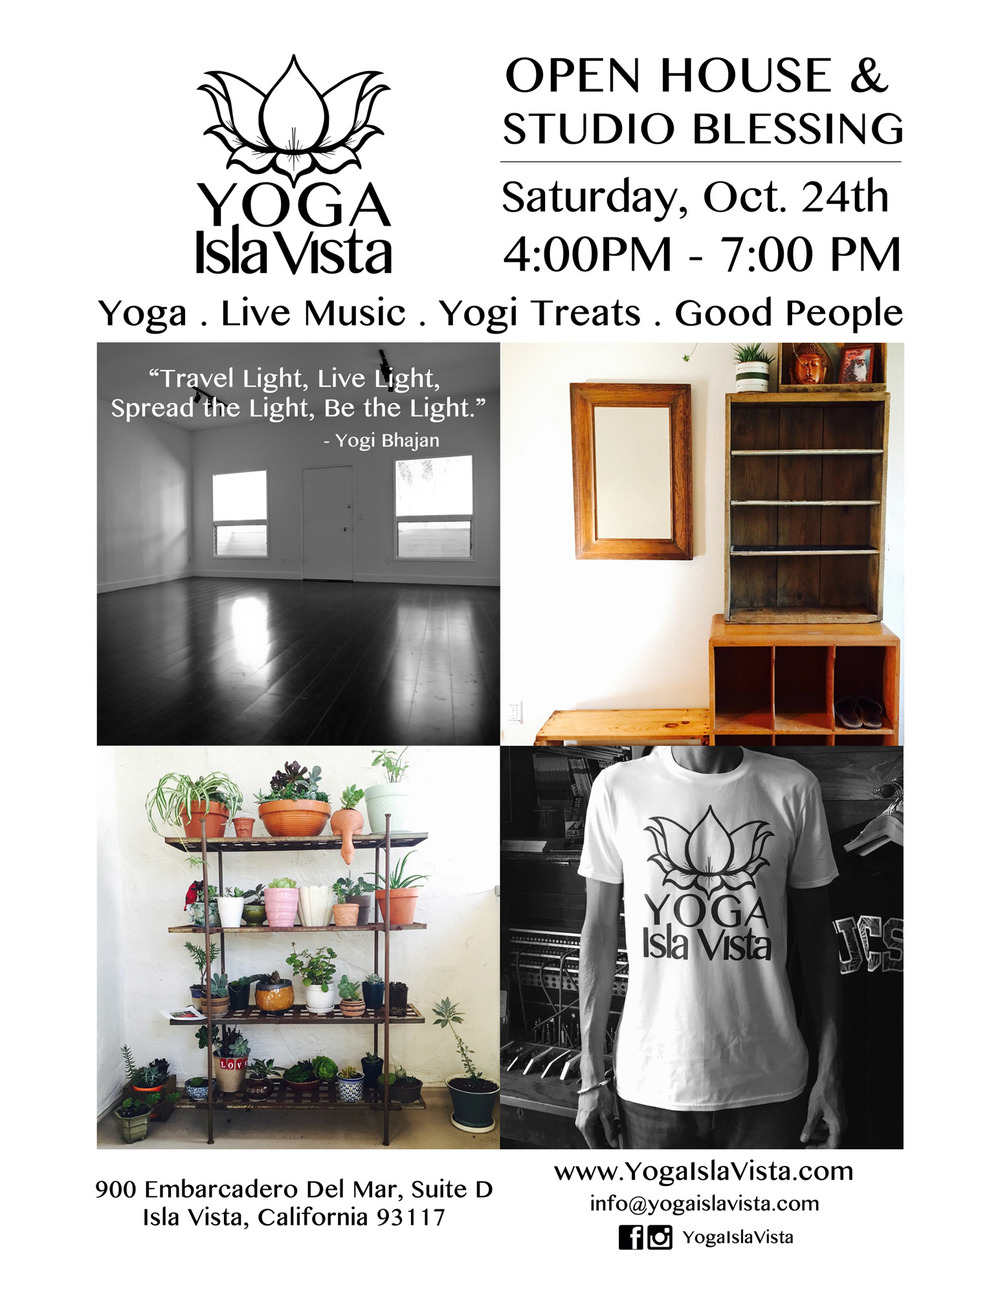 Please come and join the celebration & creation of a new yogic community in Isla Vista. Saturday, October 24 from 4:00PM - 7:00PM. There will be live music by Sukdev Jackson of Aykanna and local singer/songwriter Gabriel Kelly. The studio is located at 900 Embarcadero Del Mar, Suite D, Isla Vista, CA 93117. All are welcome.